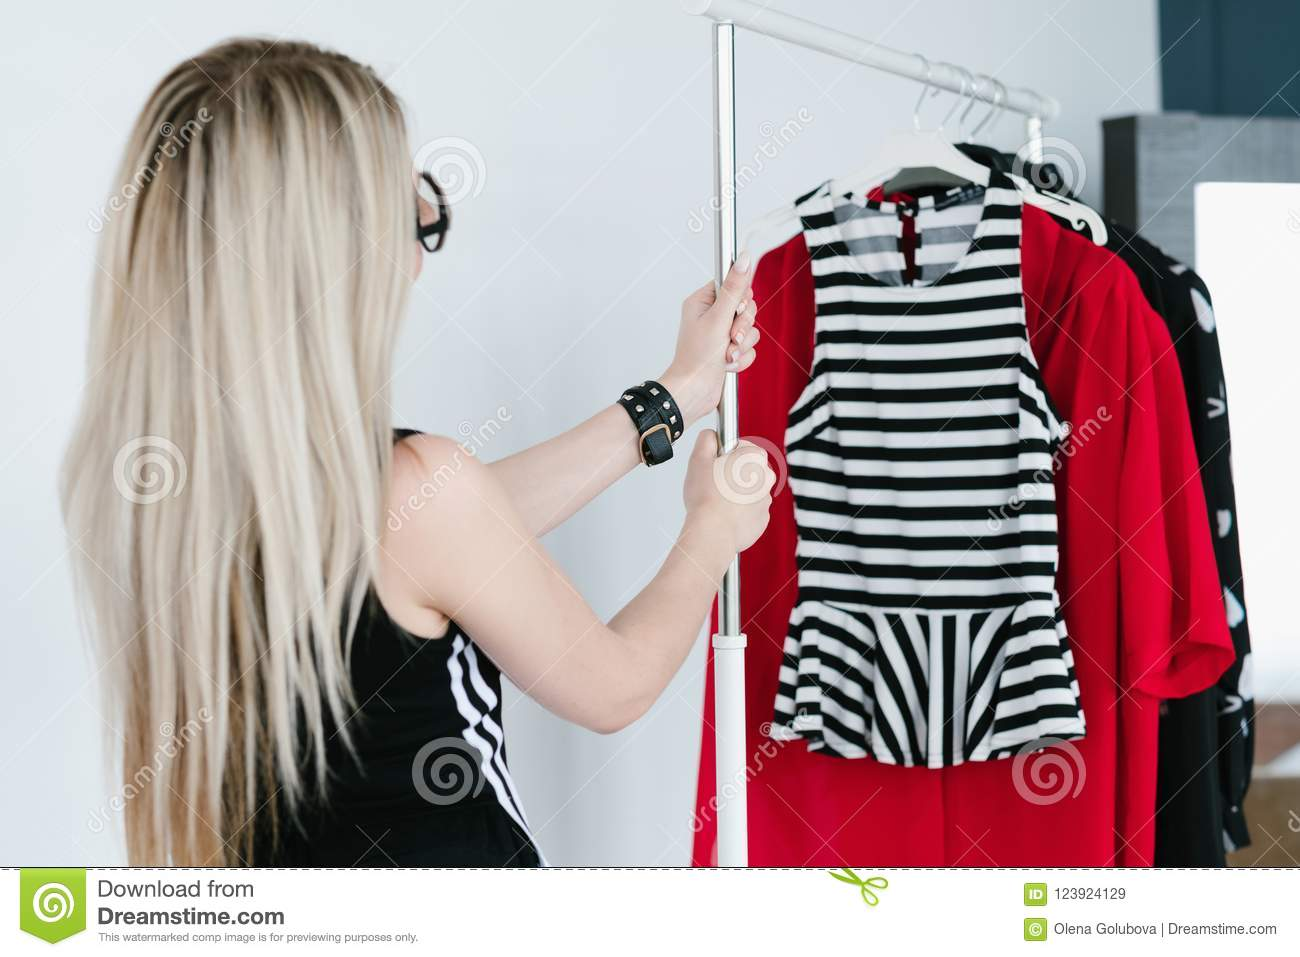 Clothes Designer Apparel Collection Fashion Hobby Stock Image Image Of Fashion Rack 123924129